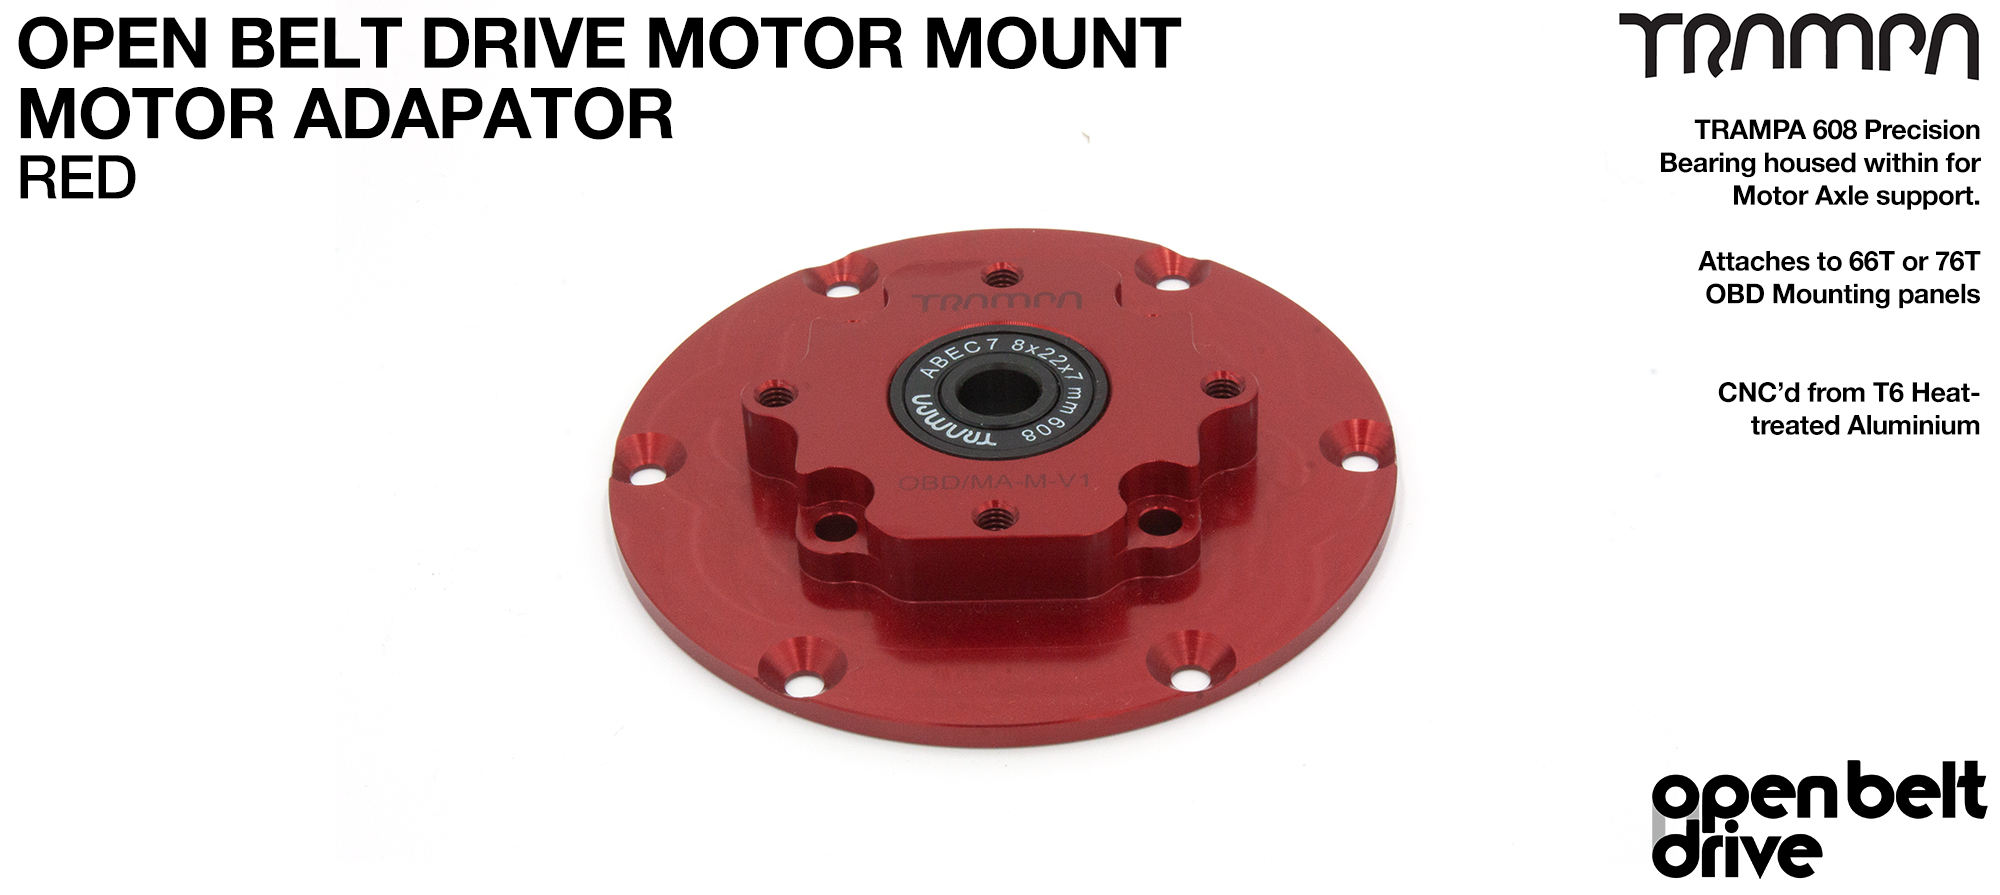 OBD Motor Adaptor with Housed Bearing - RED